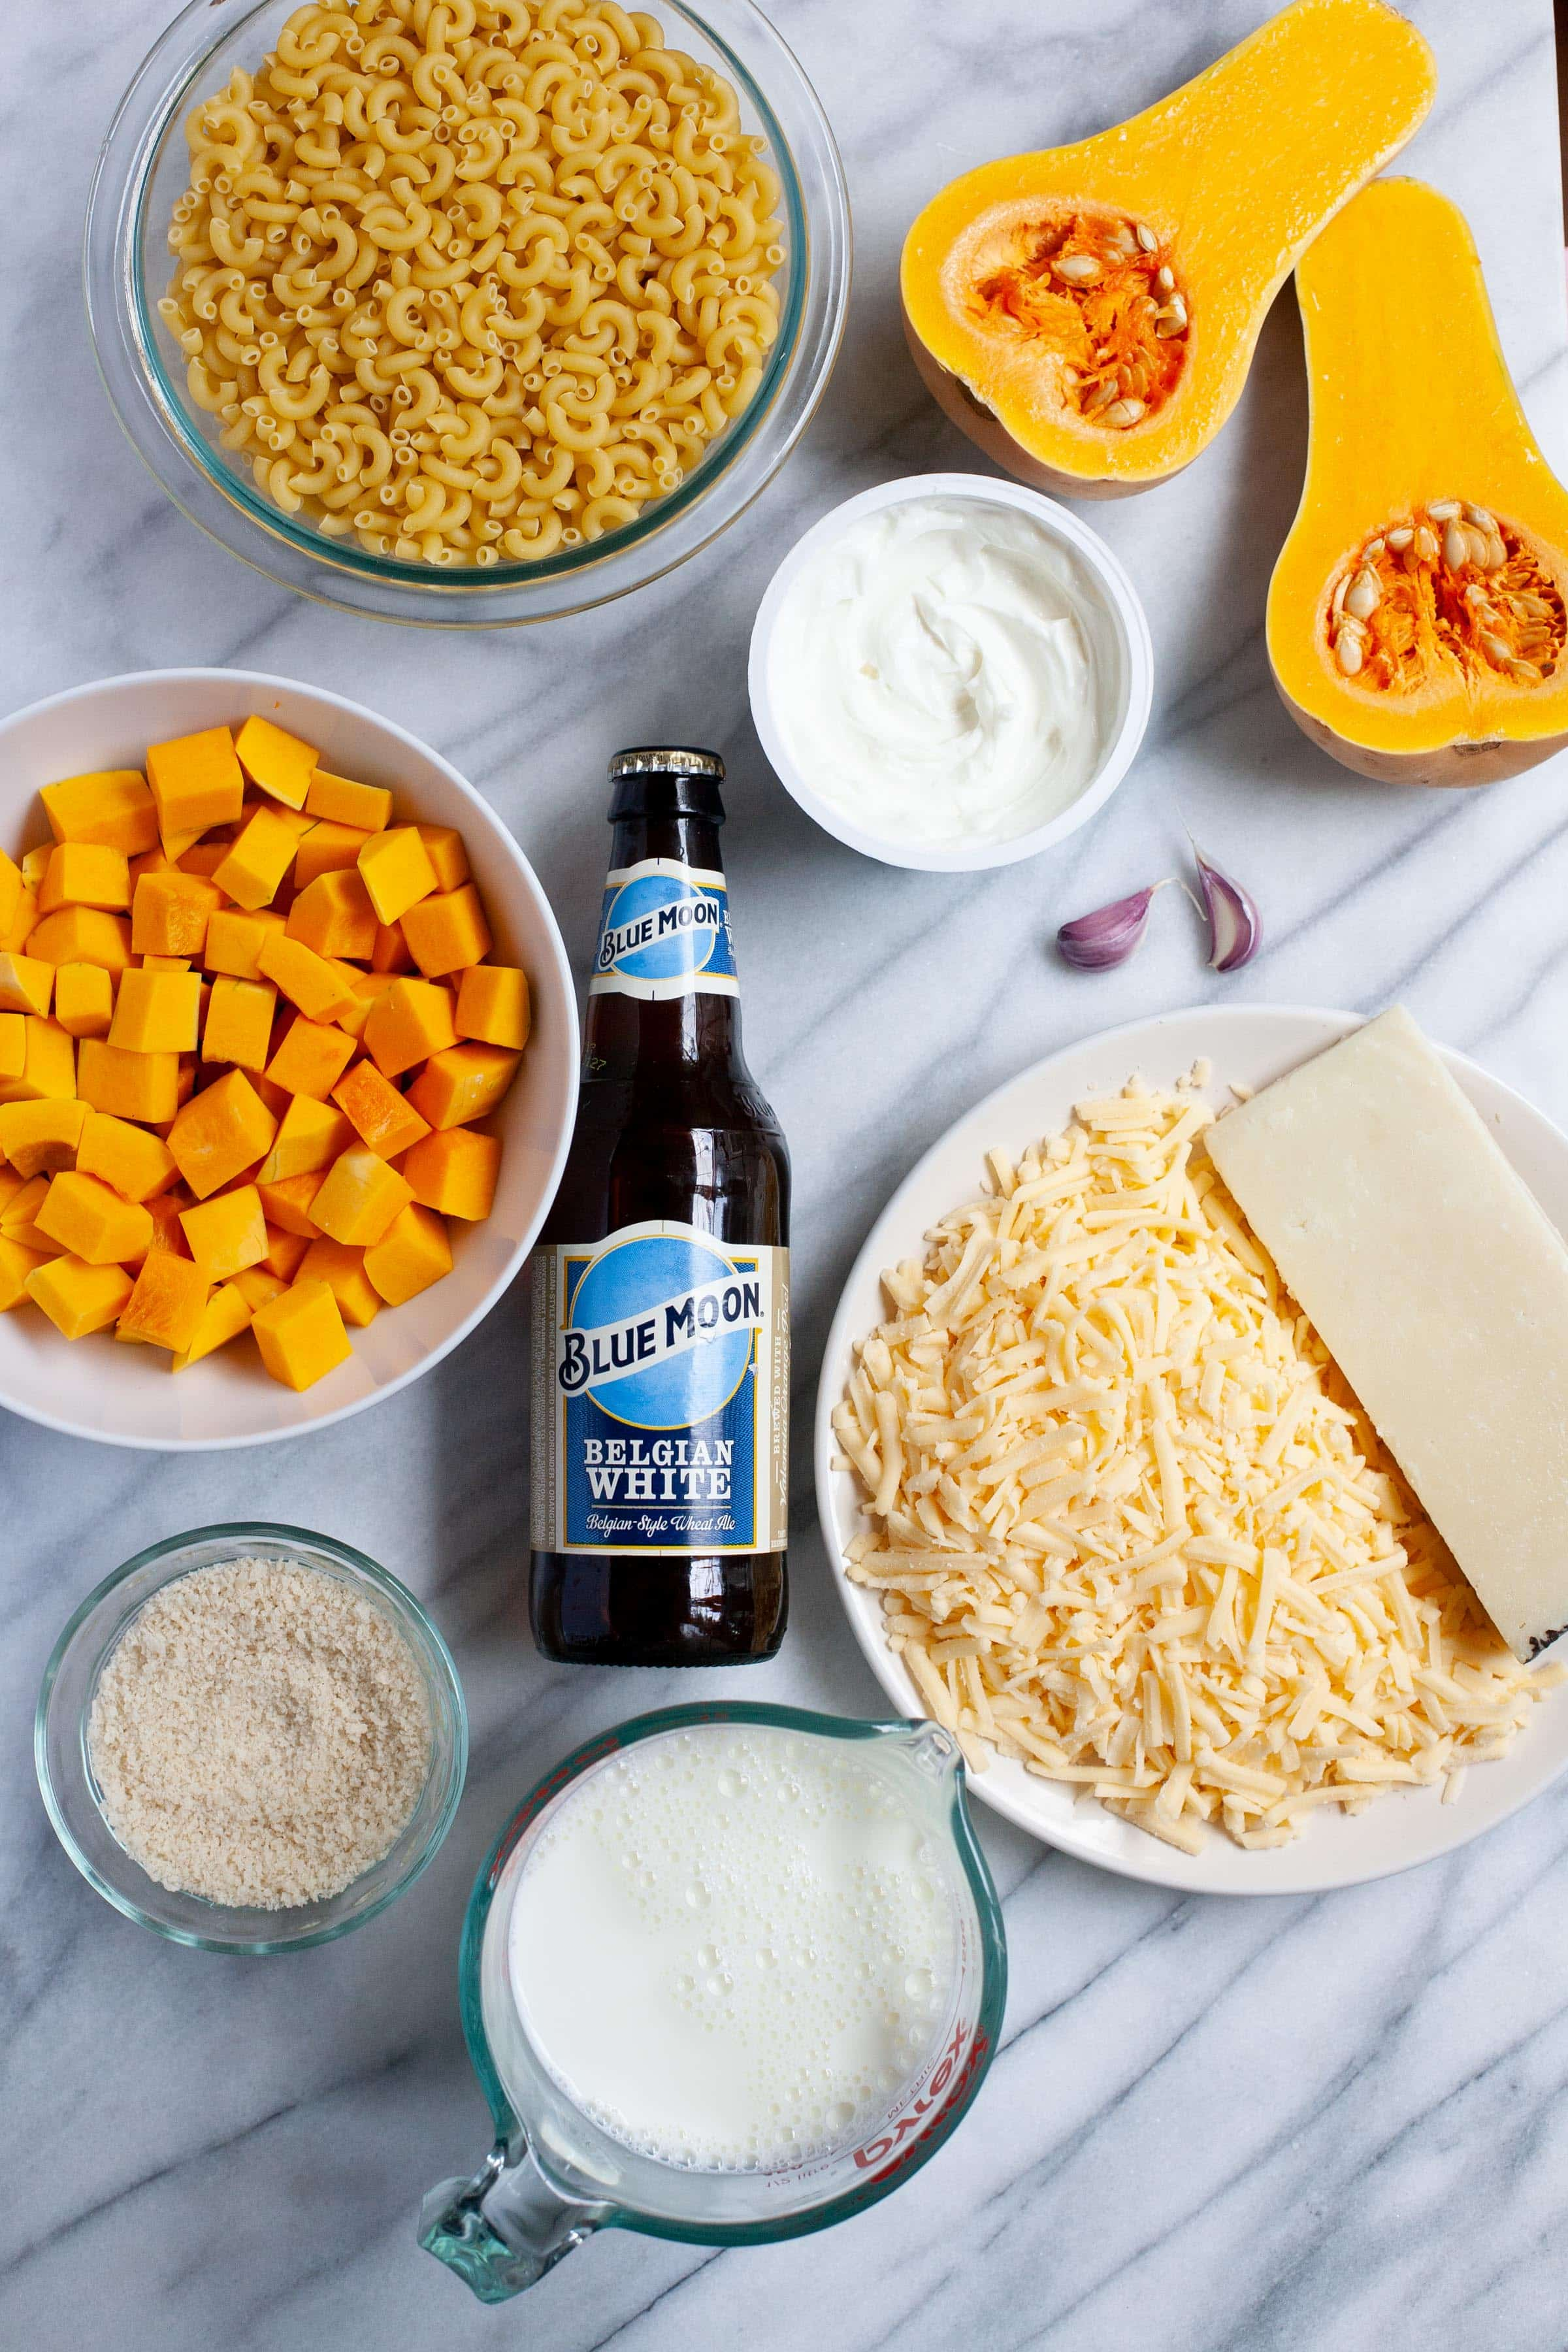 Ingredients for Beer and Butternut Squash Macaroni and Cheese in individual bowls